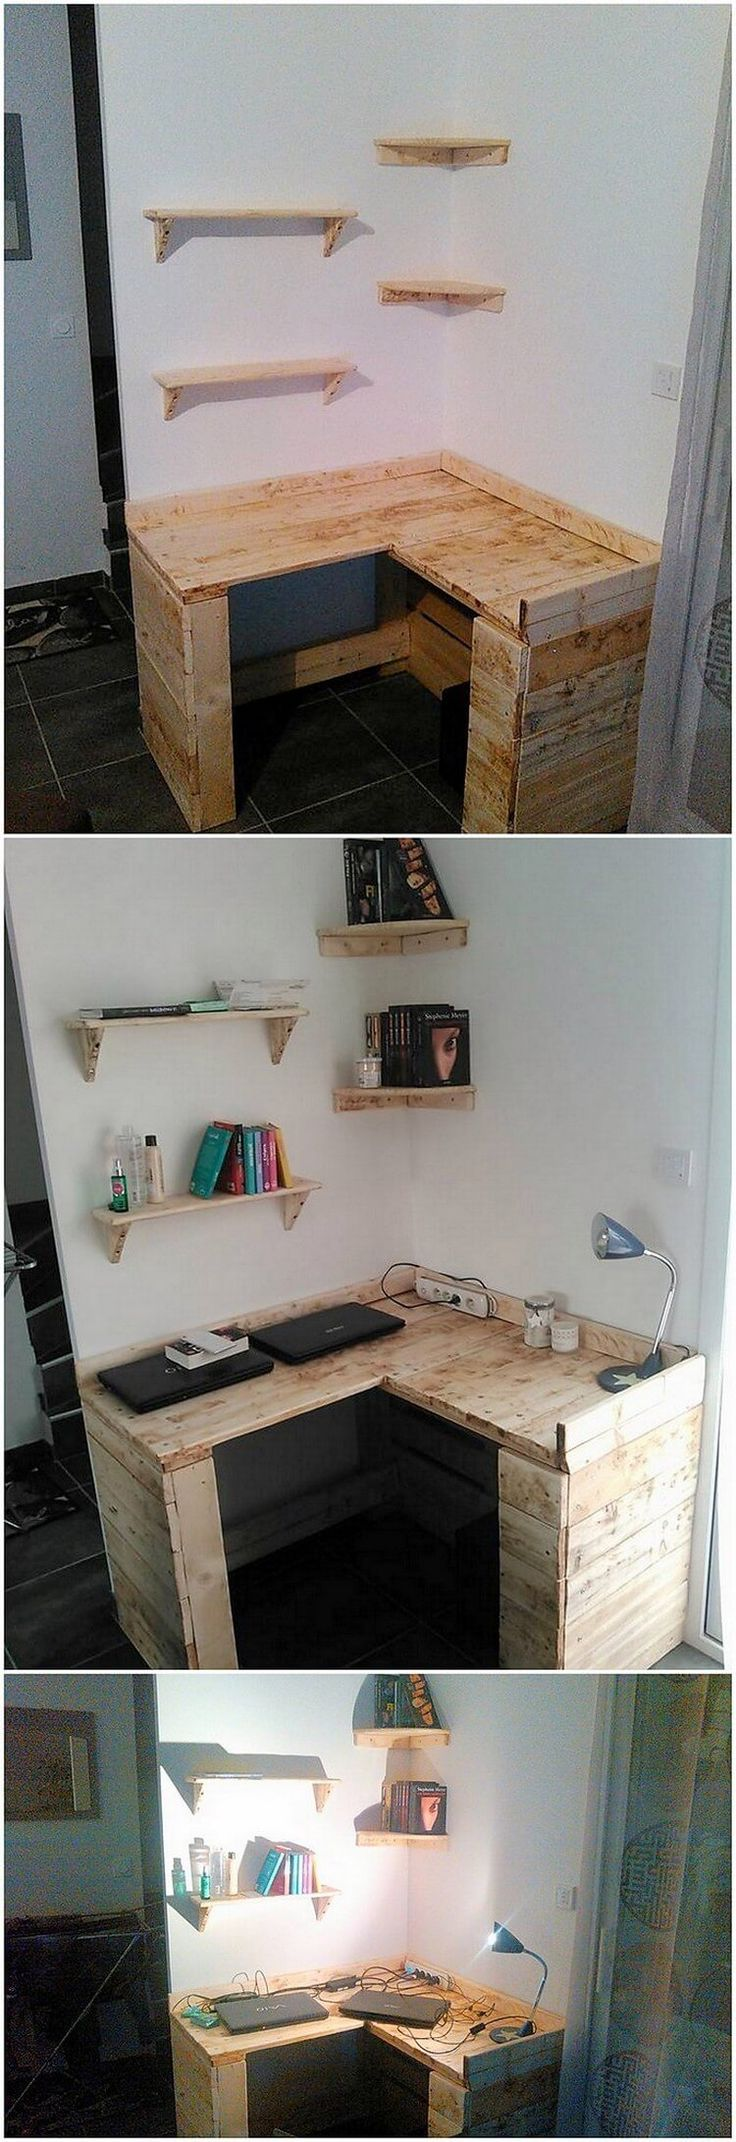 The 25+ best Study tables ideas on Pinterest | Study table designs ...